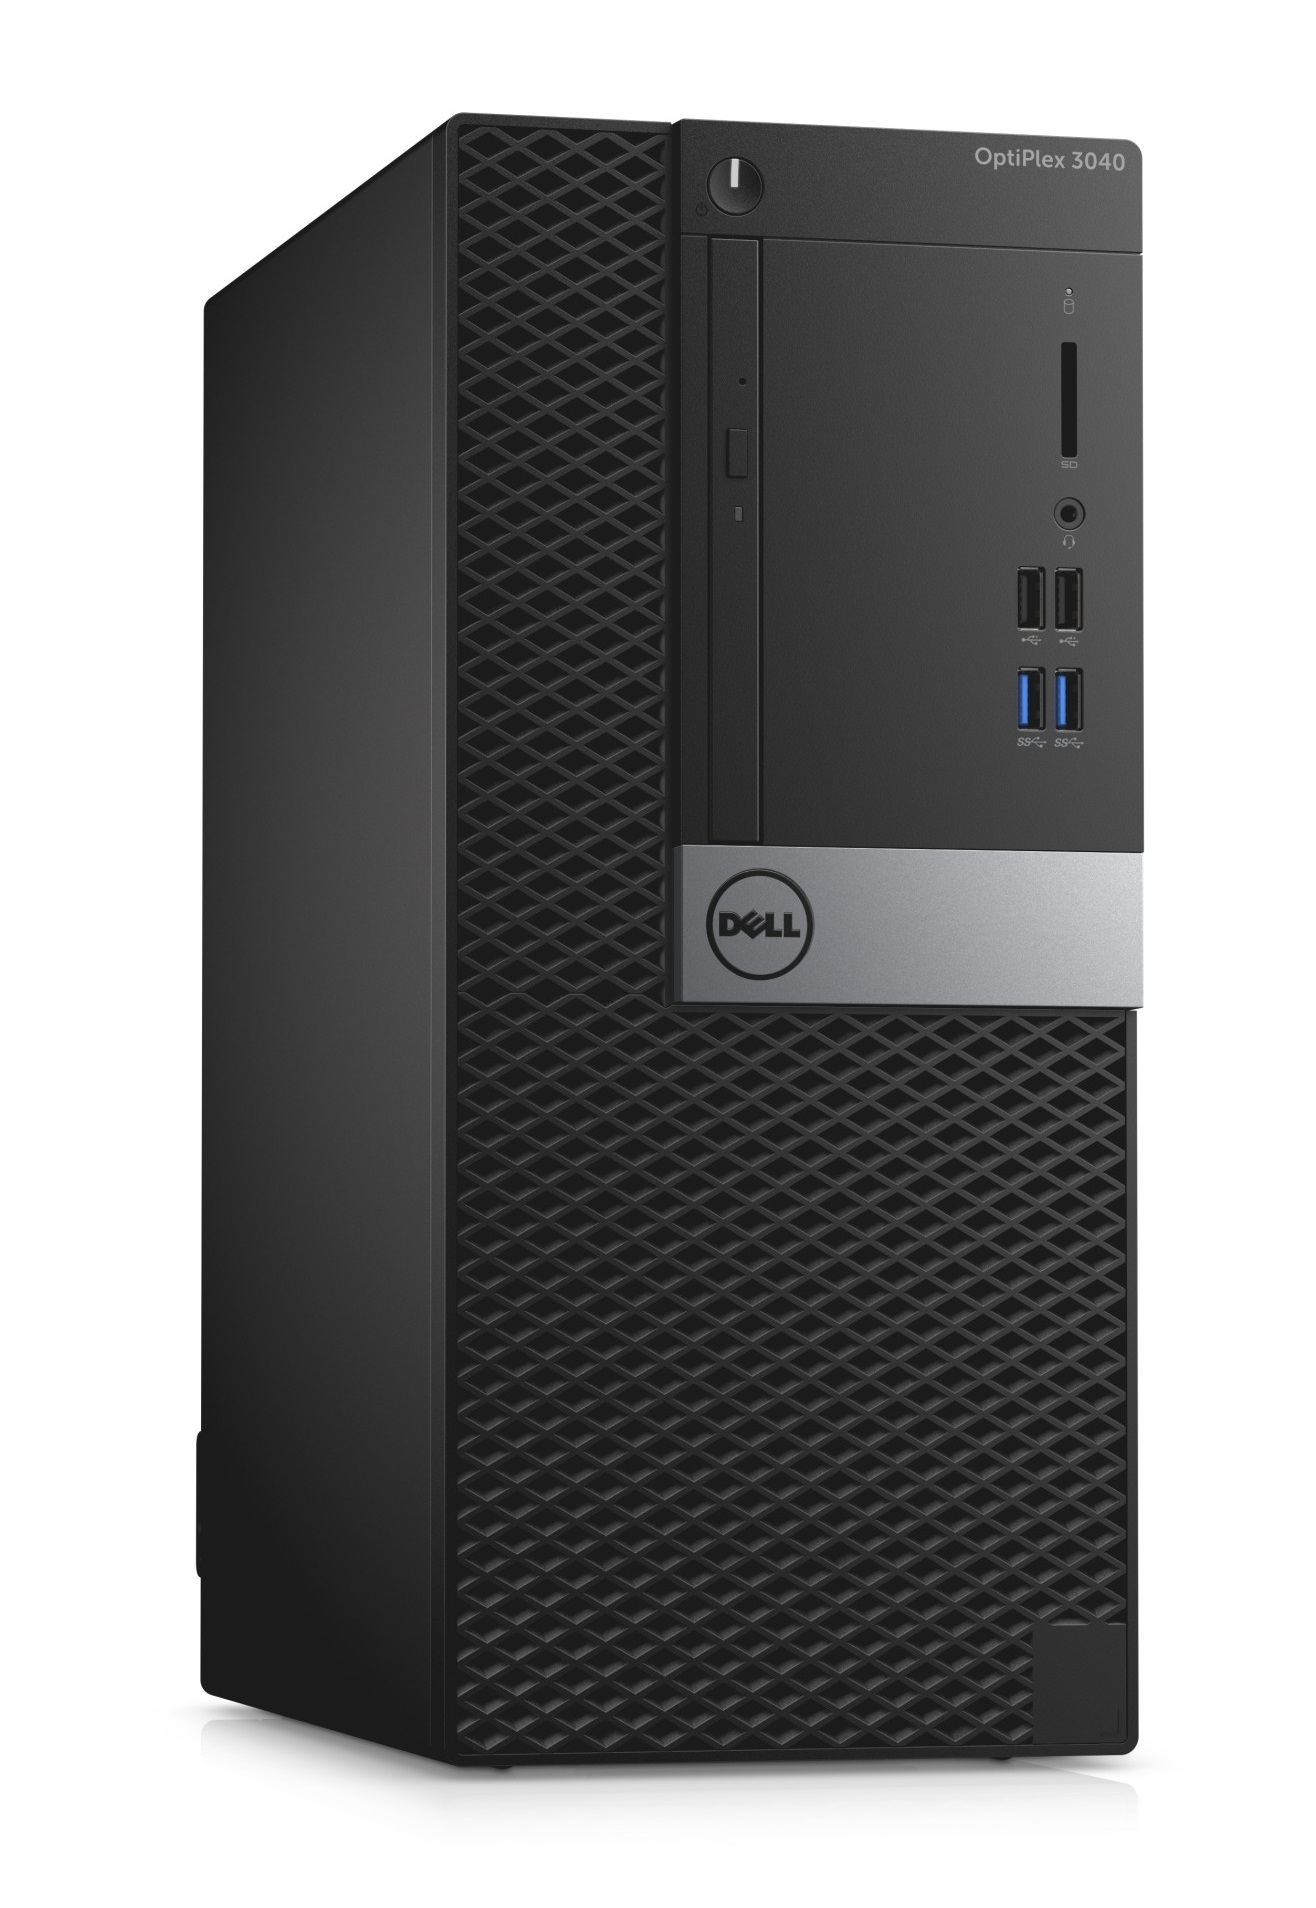 DELL OptiPlex MT 3040 Core i5-6500 /4GB/500GB/Intel HD/Win7 PRO - Win 10 64bit/3Yr NBD